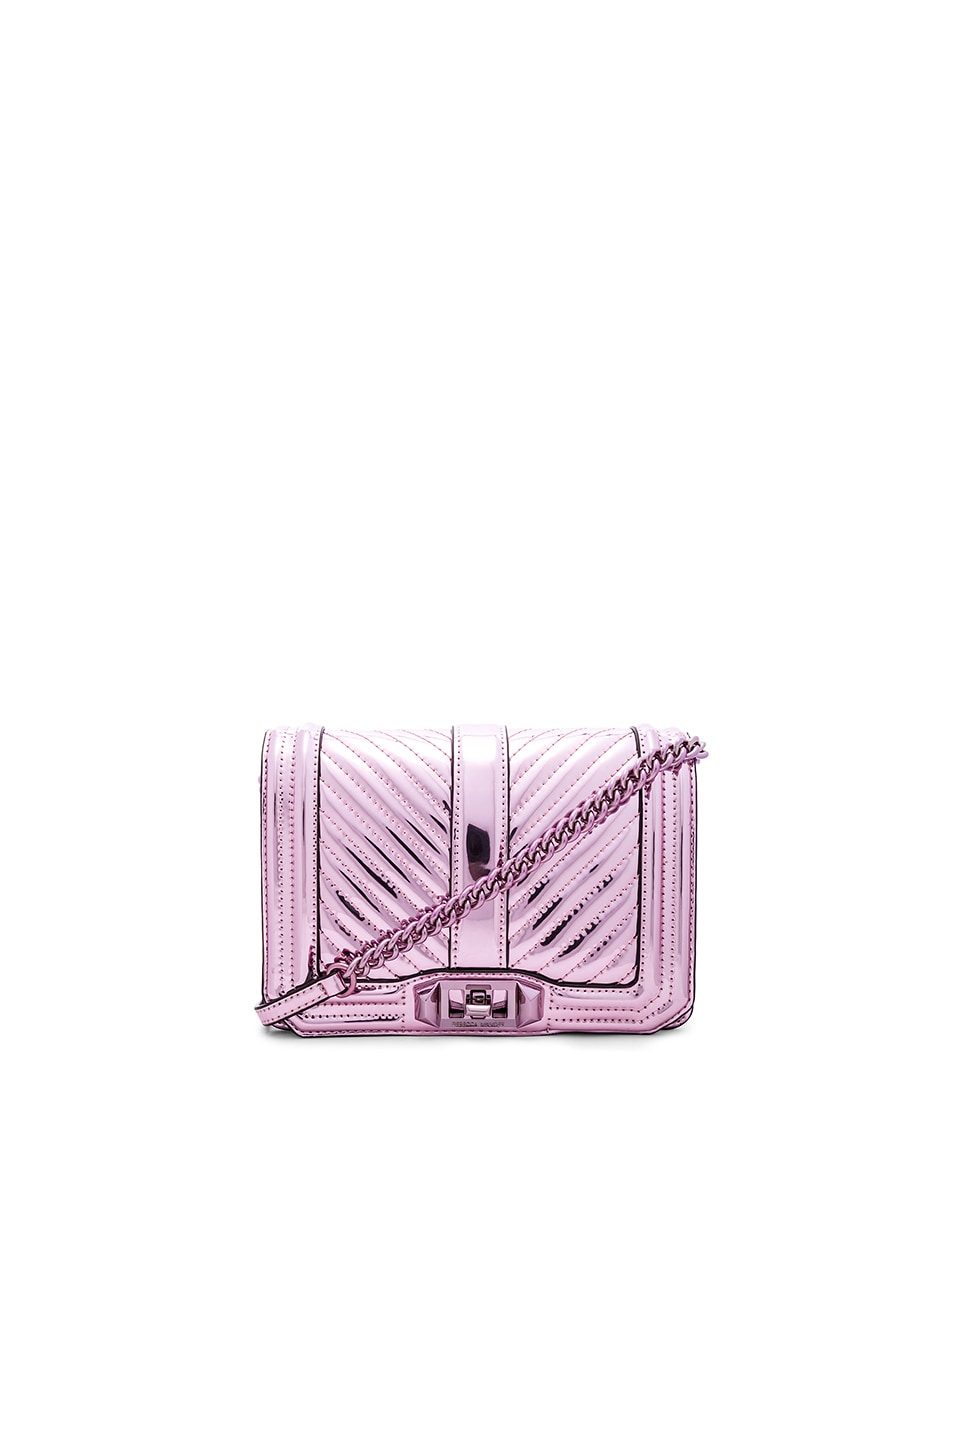 Rebecca Minkoff Chevron Quilted Small Love Crossbody Bag in Pink